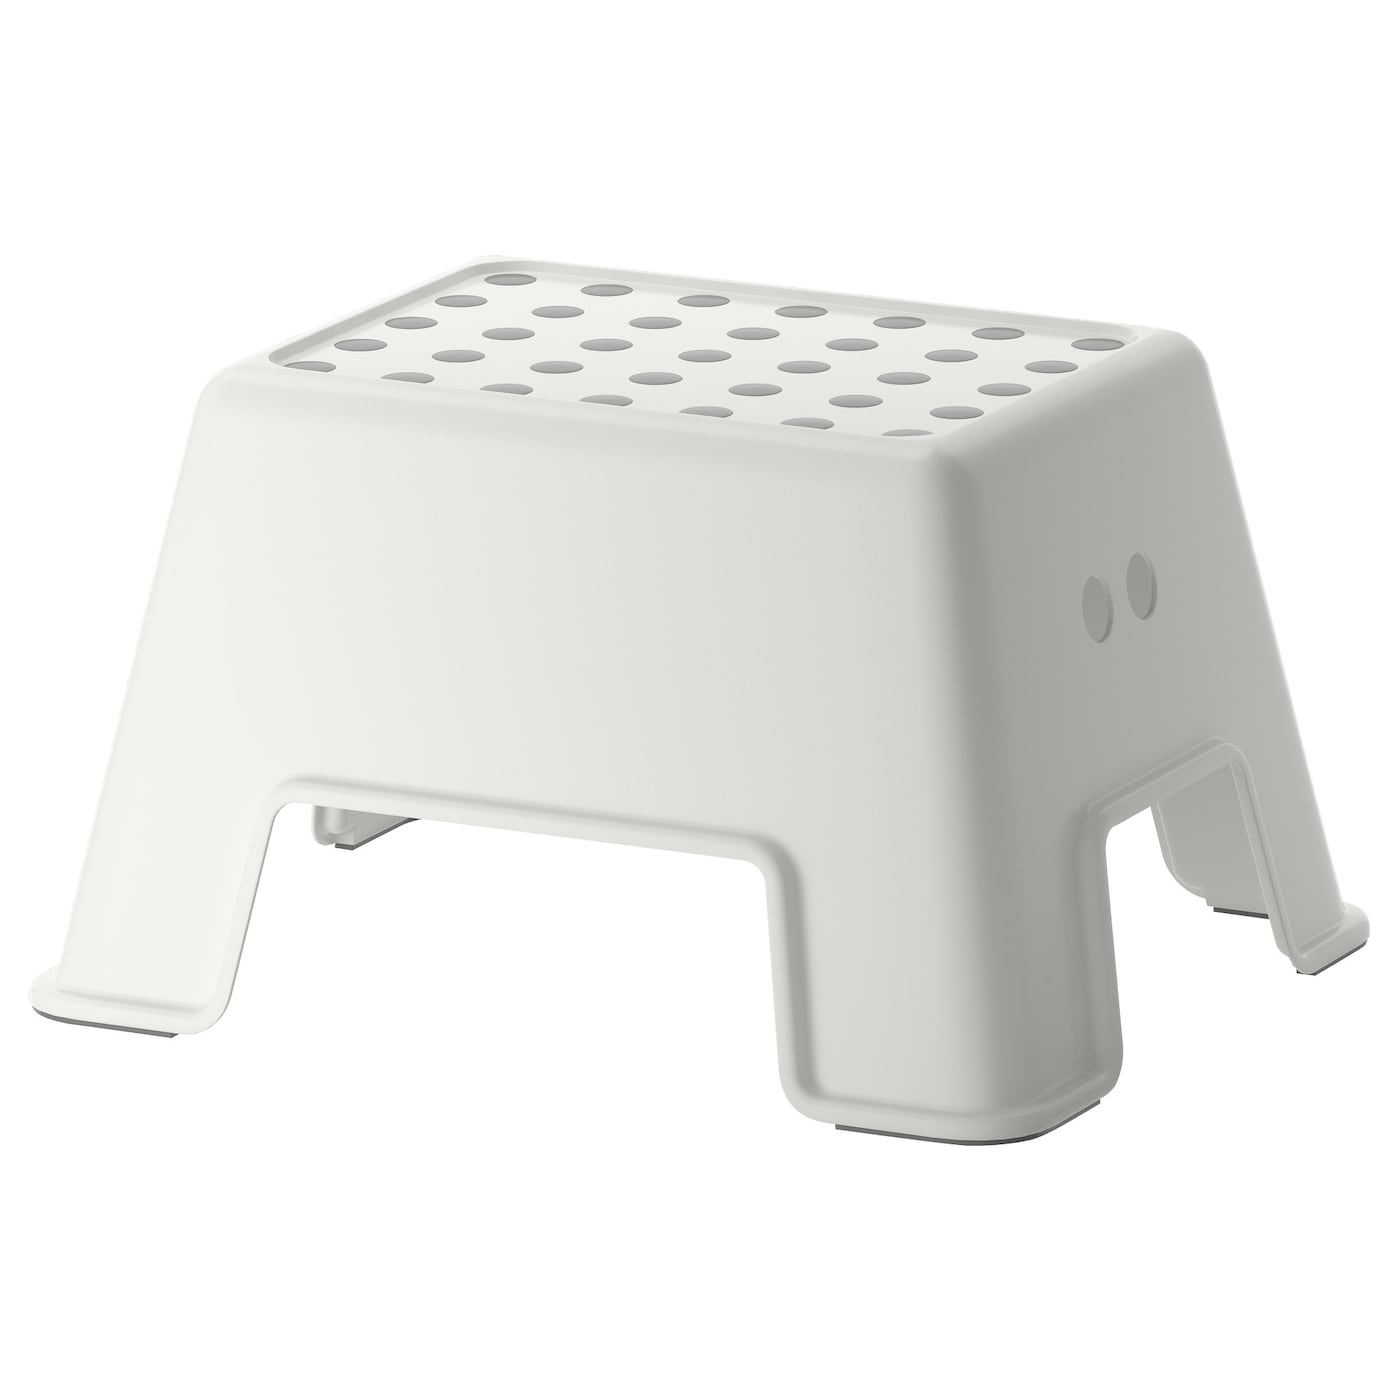 IKEA BOLMEN step stool Anti-slip cover on top reduces the risk of slippage.